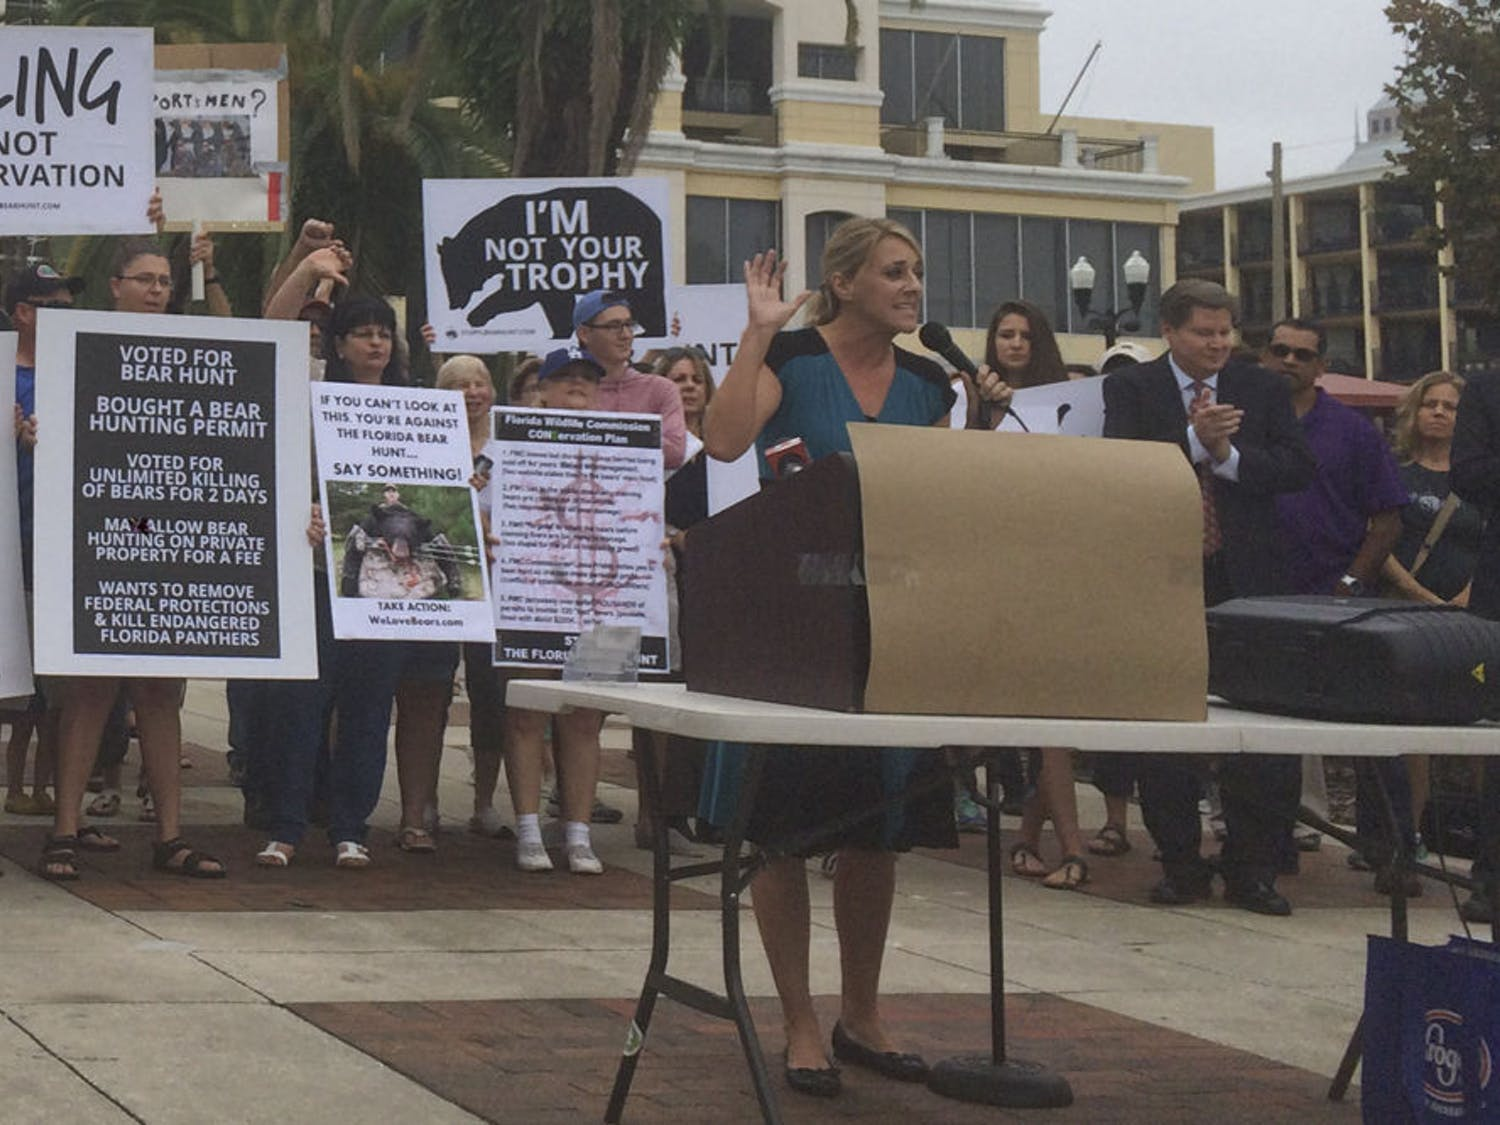 Julie Watkin, the executive director of Jacksonville-based nonprofit The Girls Gone Green, spoke out against bear hunting in a rally she organized in downtown Orlando last month. The Florida Fish and Wildlife Commission's statewide hunt begins Saturday and will run through Sunday. Its goal is to harvest 320 bears to manage the population.